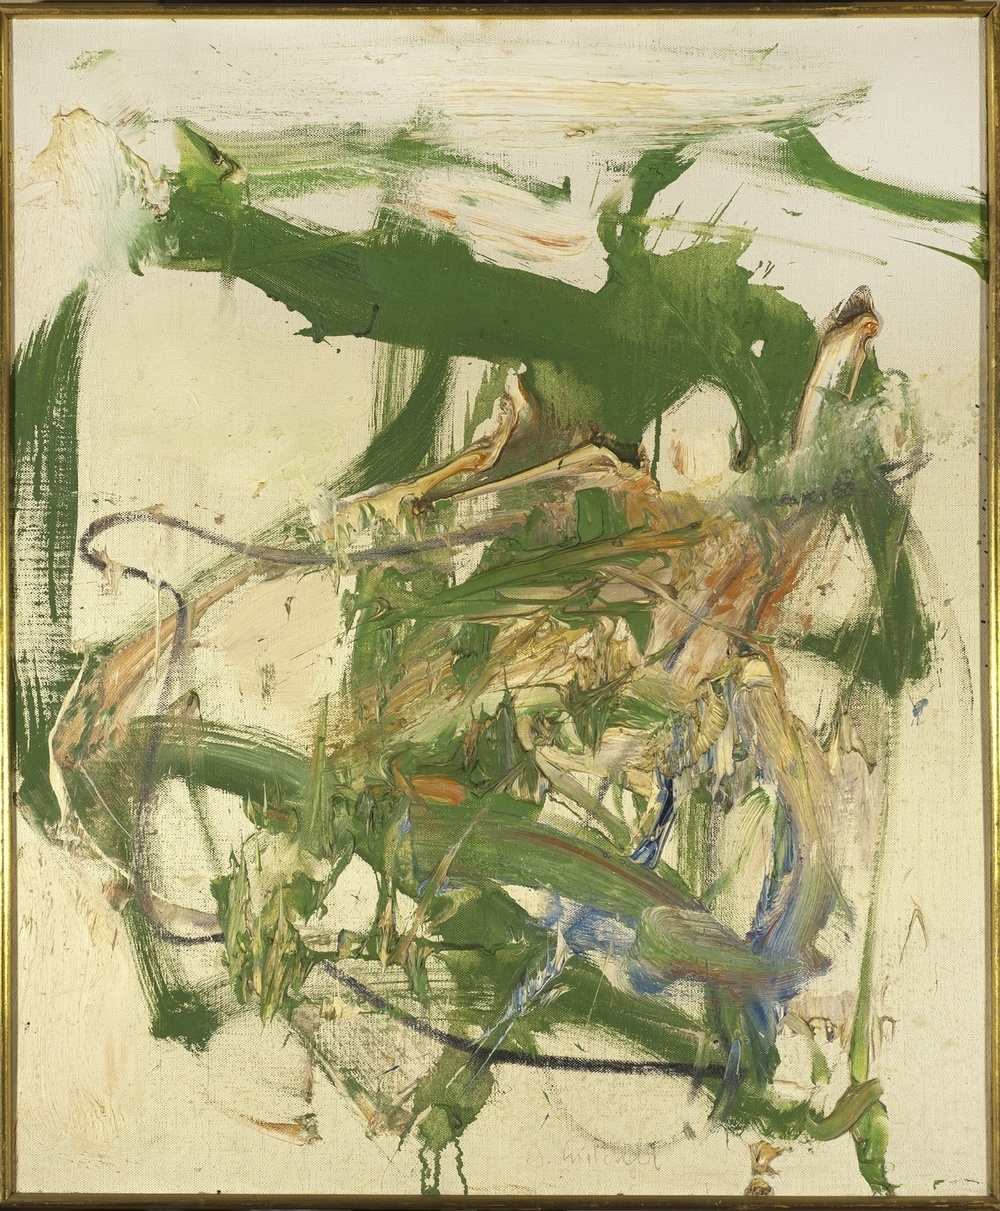 Joan Mitchell,  Sans titre , vers 1959-1962. Huile sur toile, 46 x 38 cm.. Signé en bas vers le centre. Contresigné sur le châssis de l'oeuvre. Musée de l'Hospice Saint-Roch, Issoudun. Inv. 2015.8.55. Zao Wou-Ki collectionneur / Collection du Musée de l'Hospice Saint-Roch. Donation Fondation Zao Wou-Ki © Photographe Antoine Mercier © ADAGP, Paris, 2016.